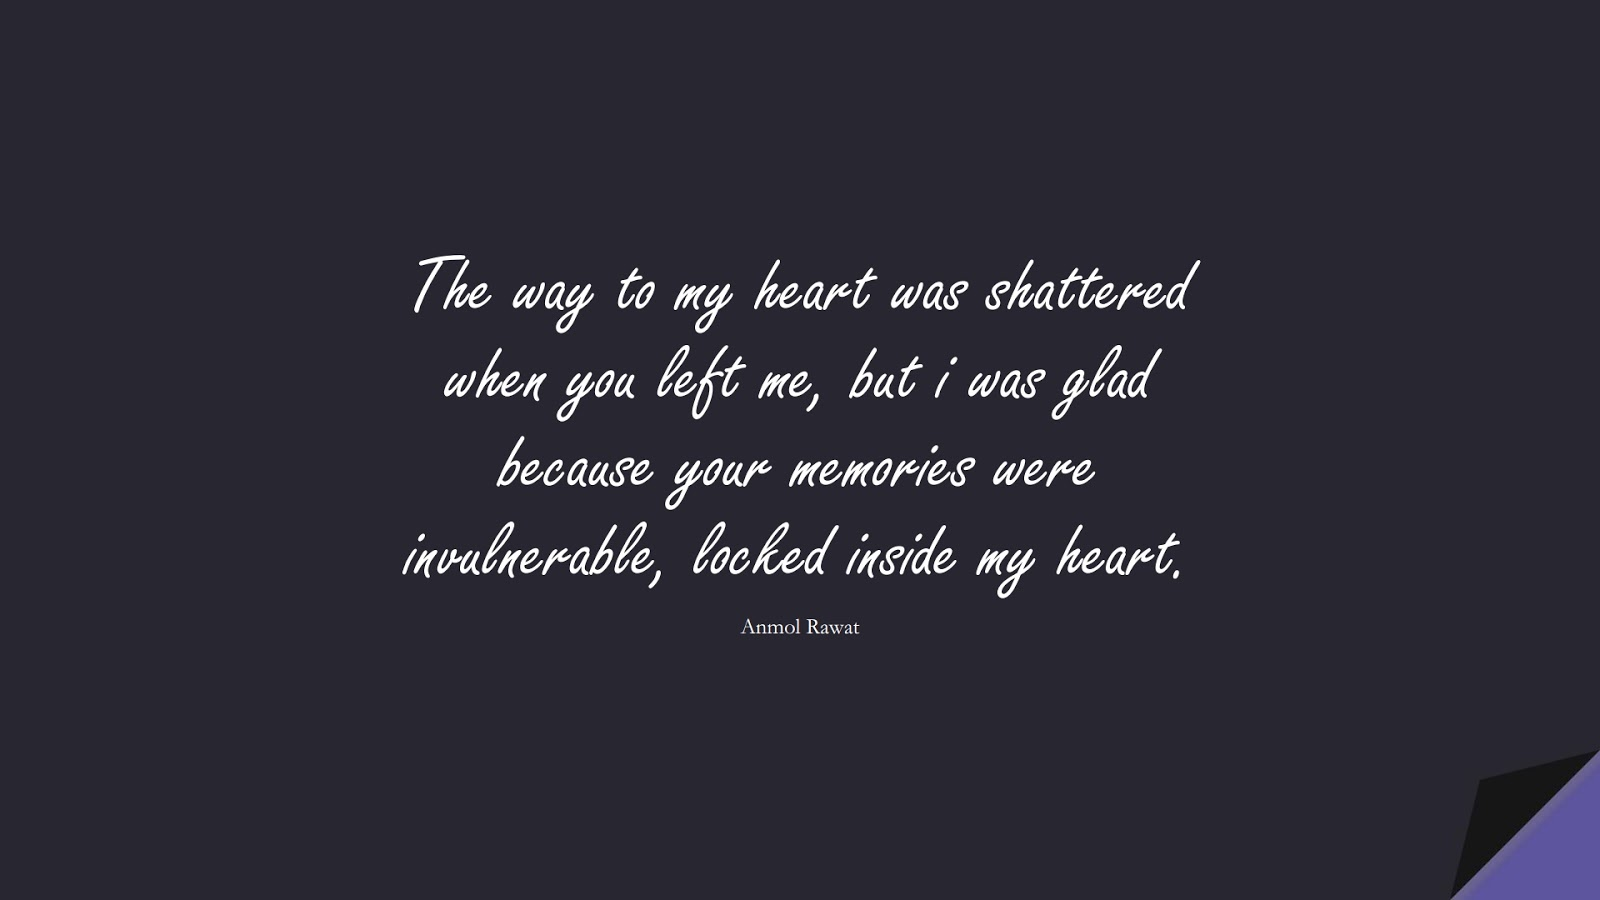 The way to my heart was shattered when you left me, but i was glad because your memories were invulnerable, locked inside my heart. (Anmol Rawat);  #SadLoveQuotes